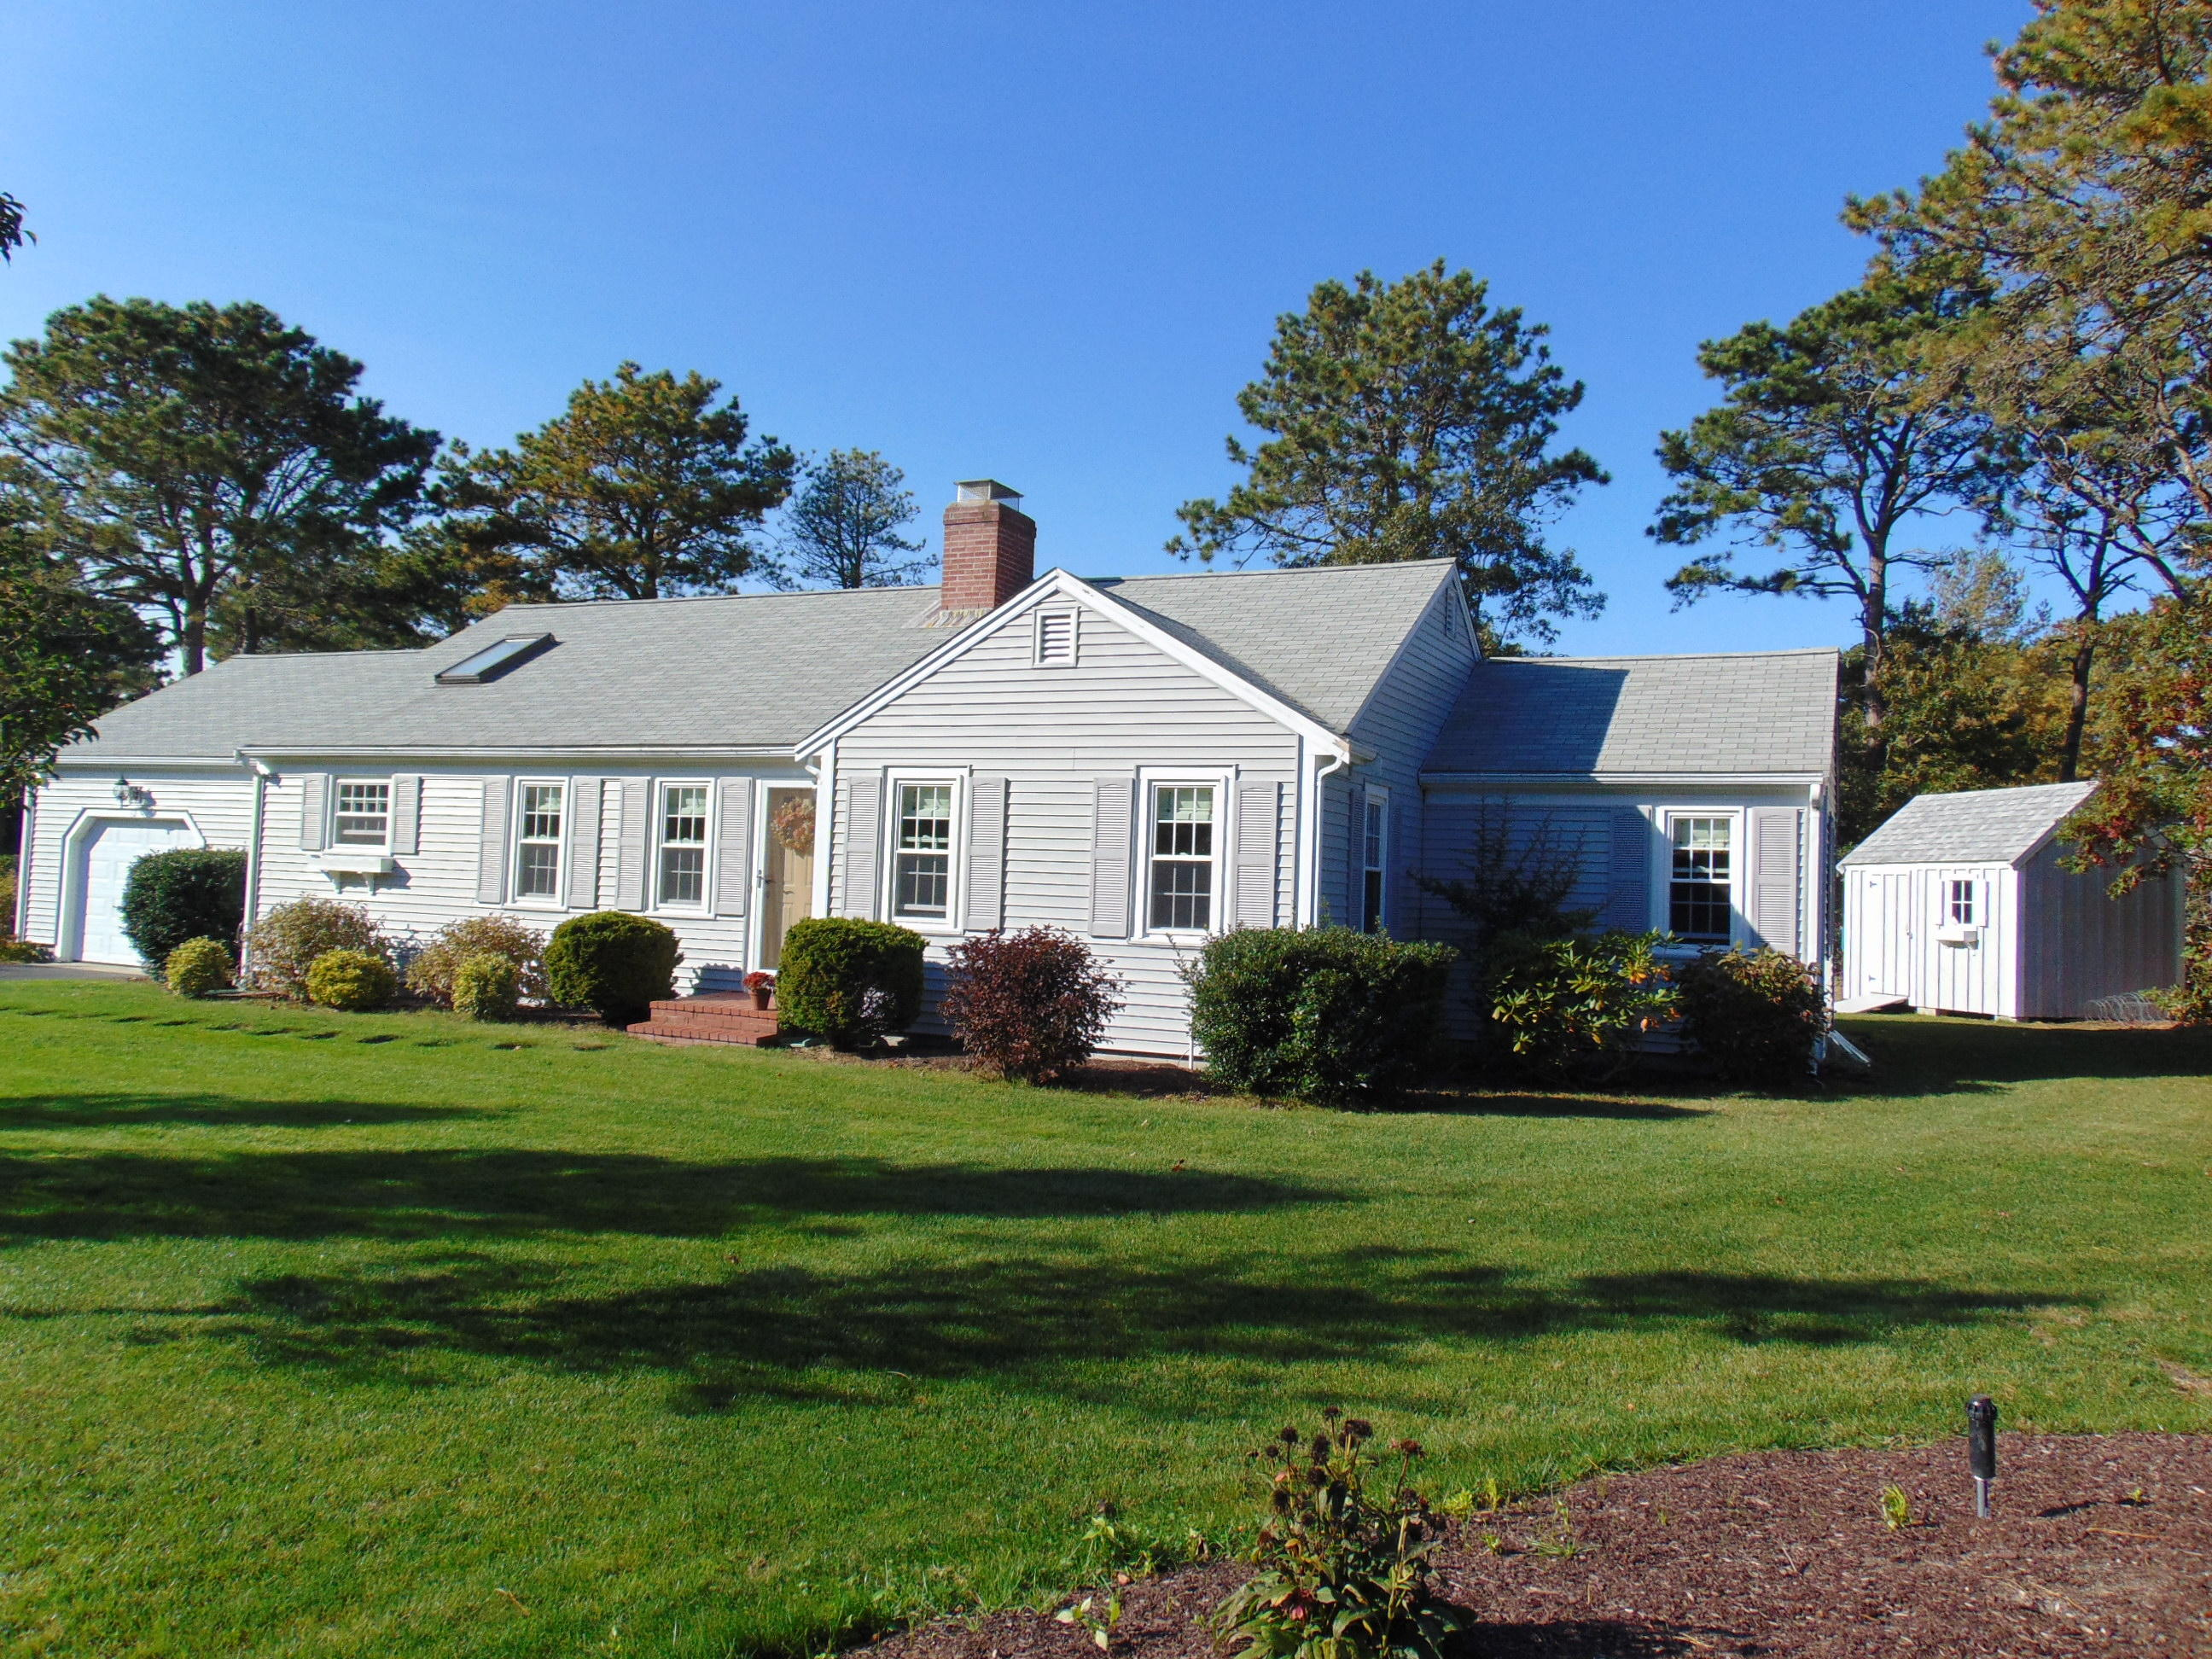 12 Pollock Rip Road, South Yarmouth MA, 02664 details